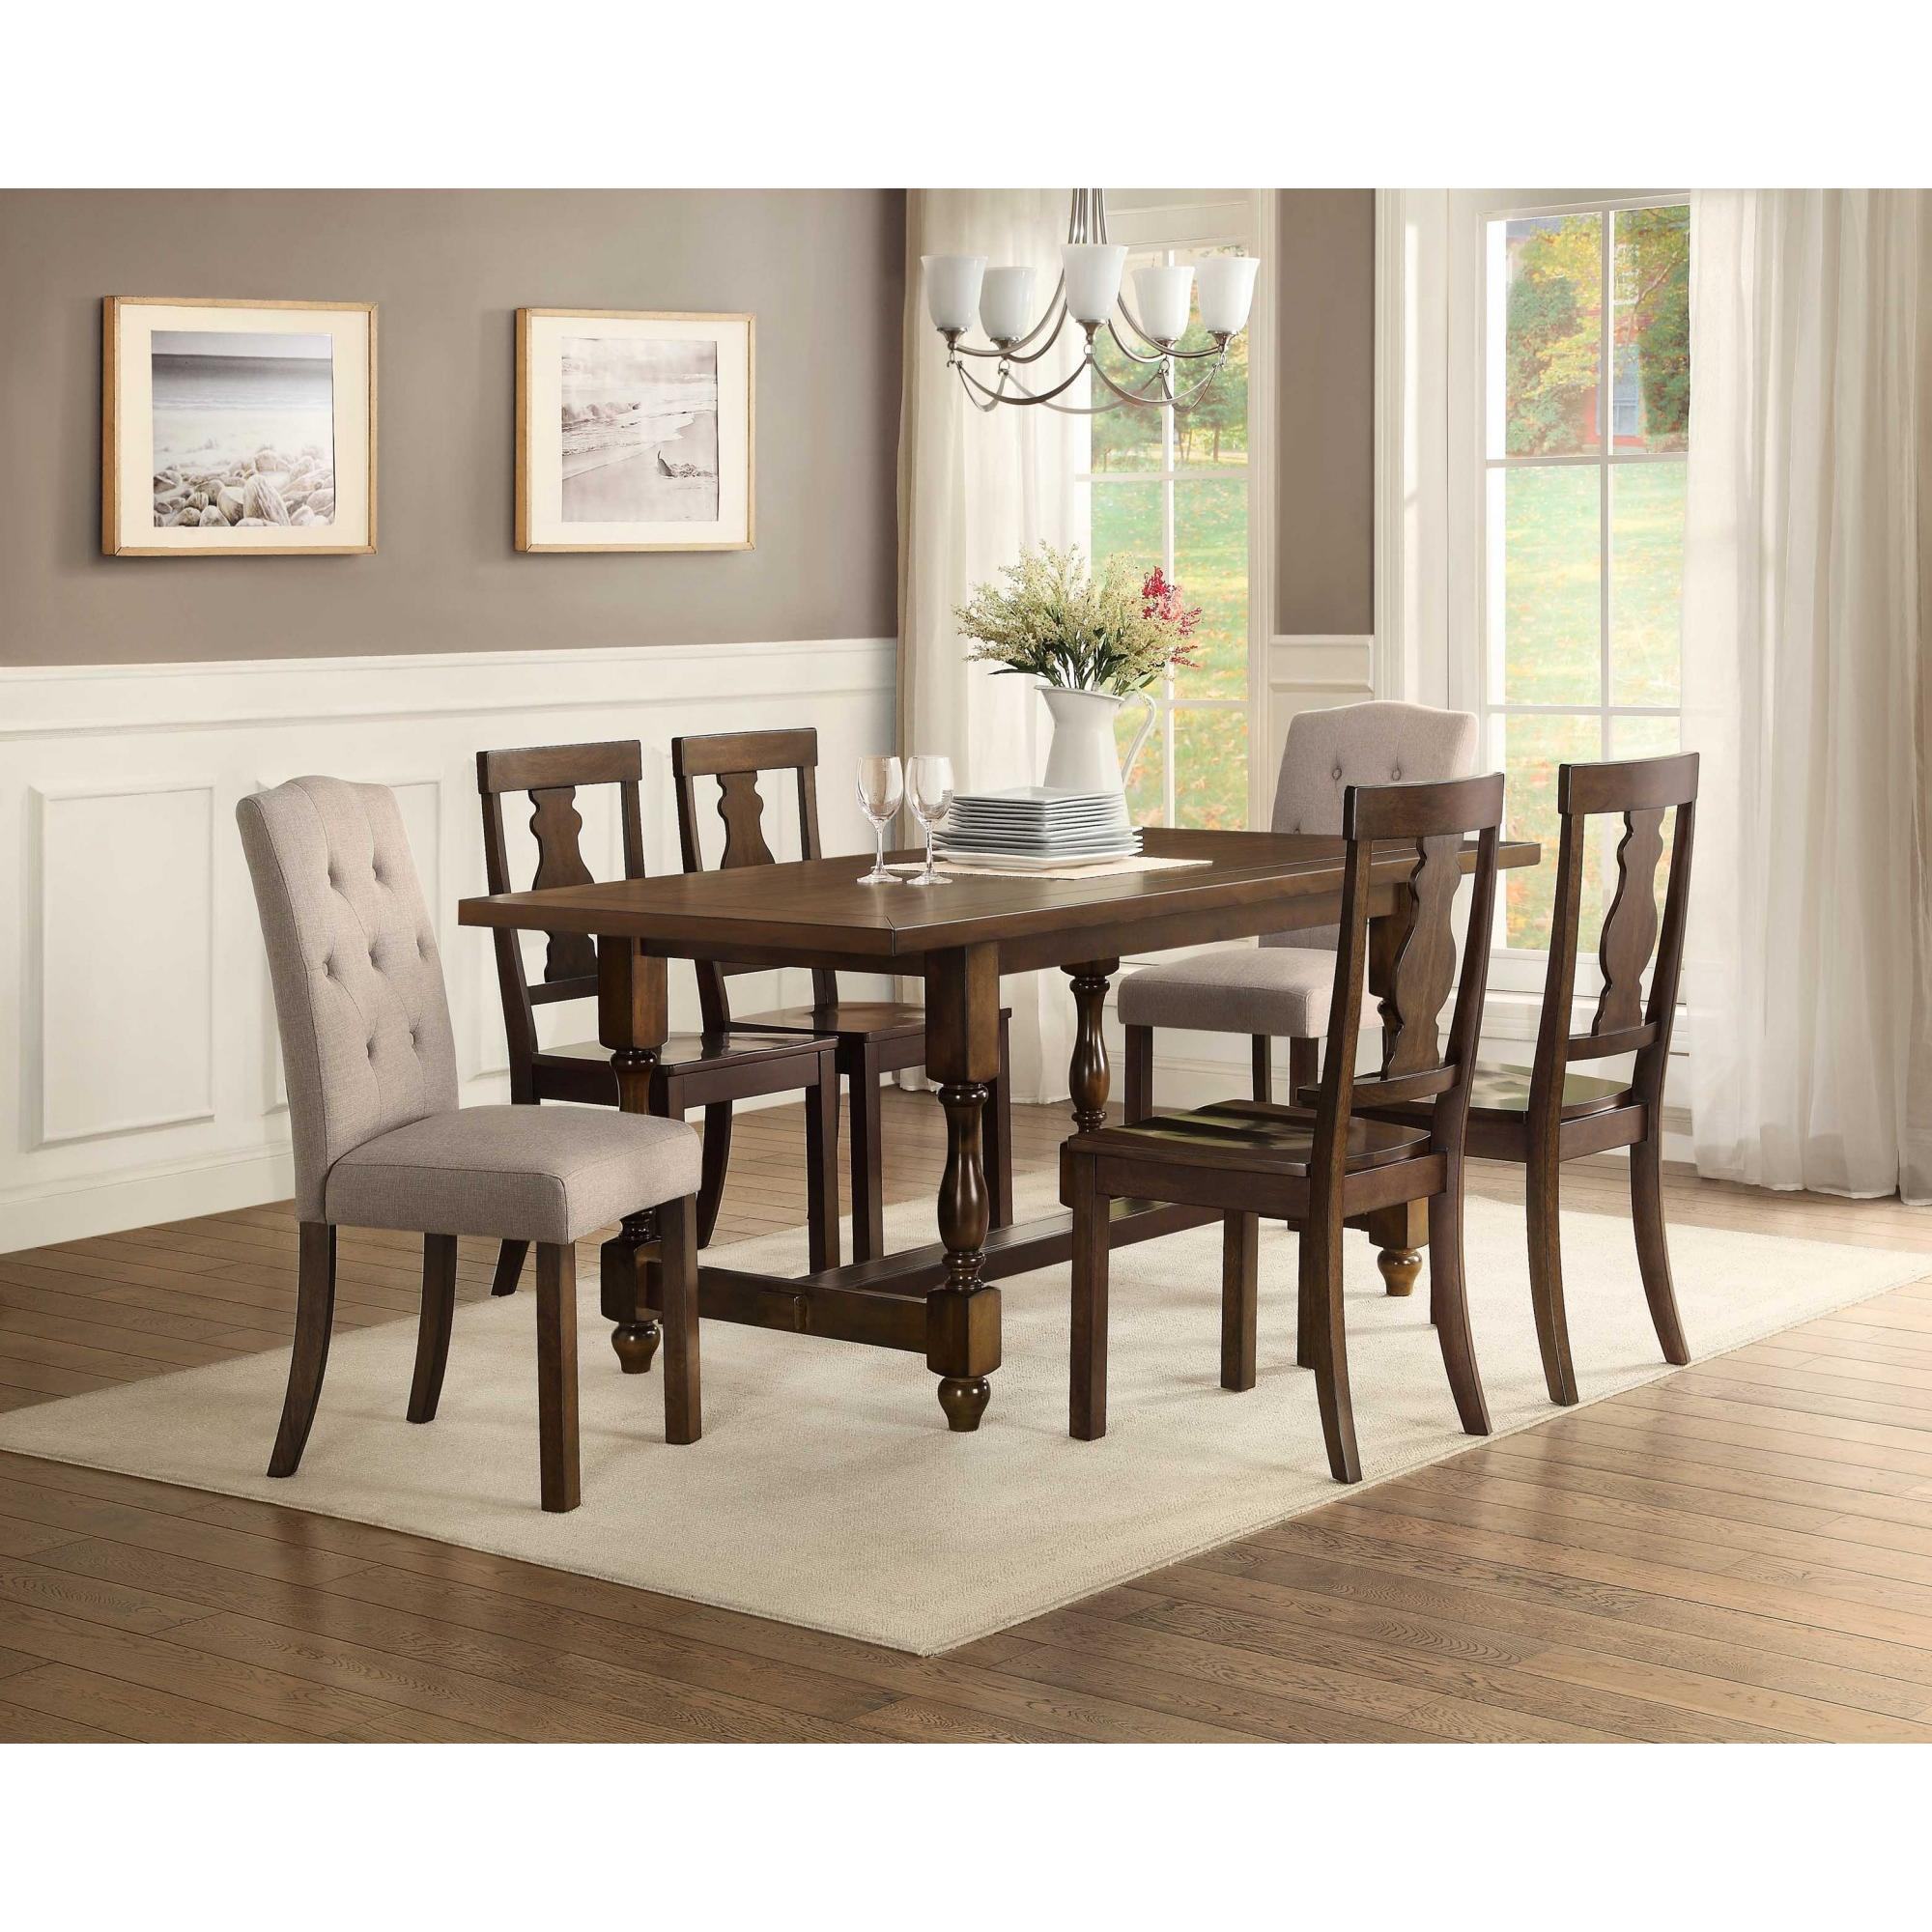 Better Homes and Gardens Providence Wood Dining Chair Set of 2